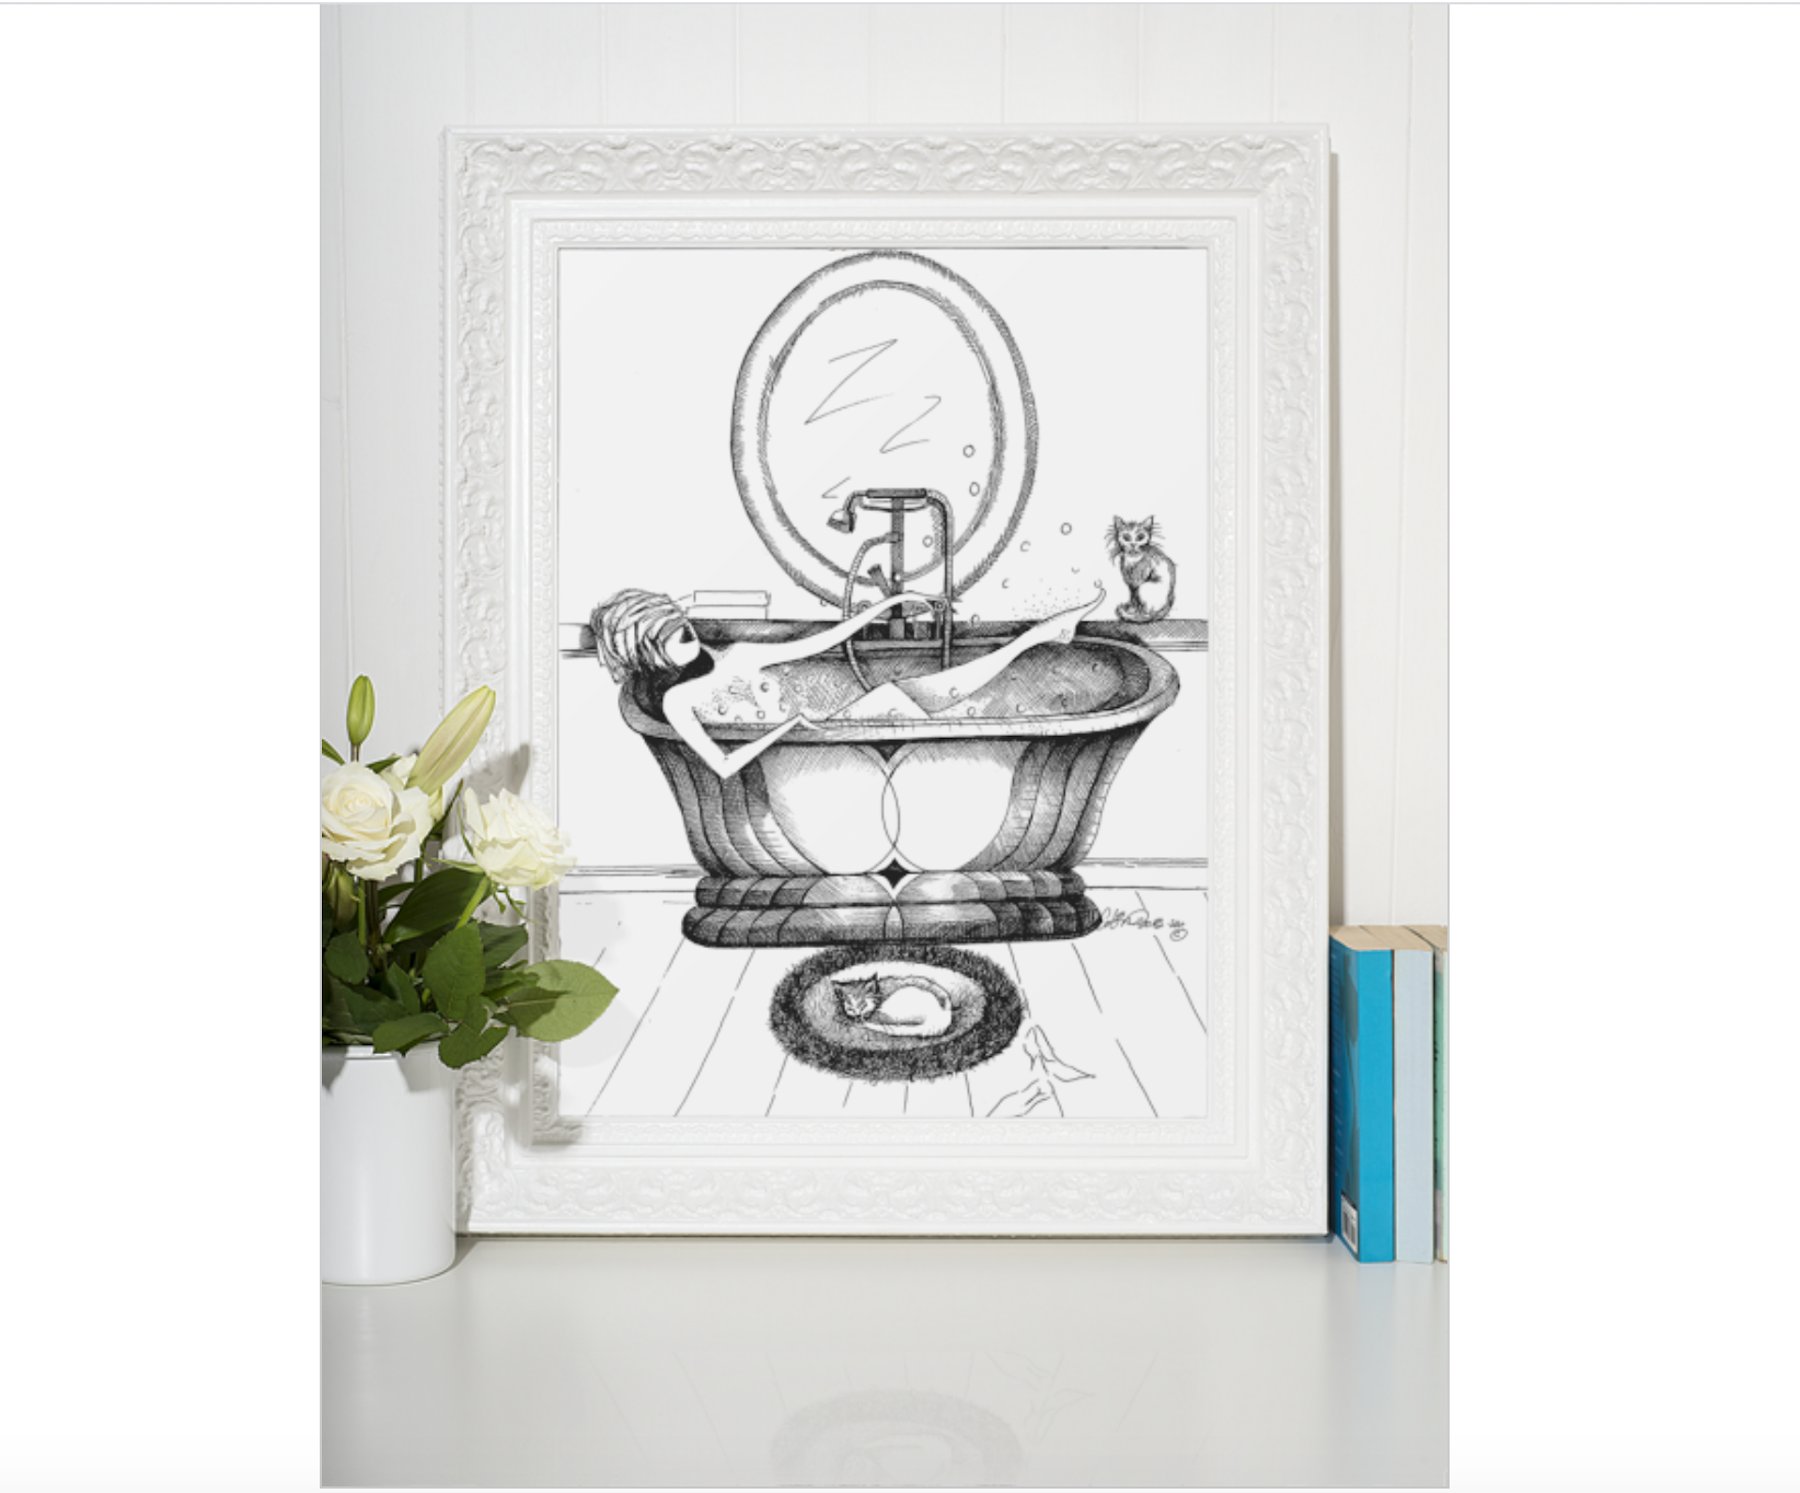 Playful Powder Room Decor, Vintage Bath illustration, Art Print With Woman and Cats